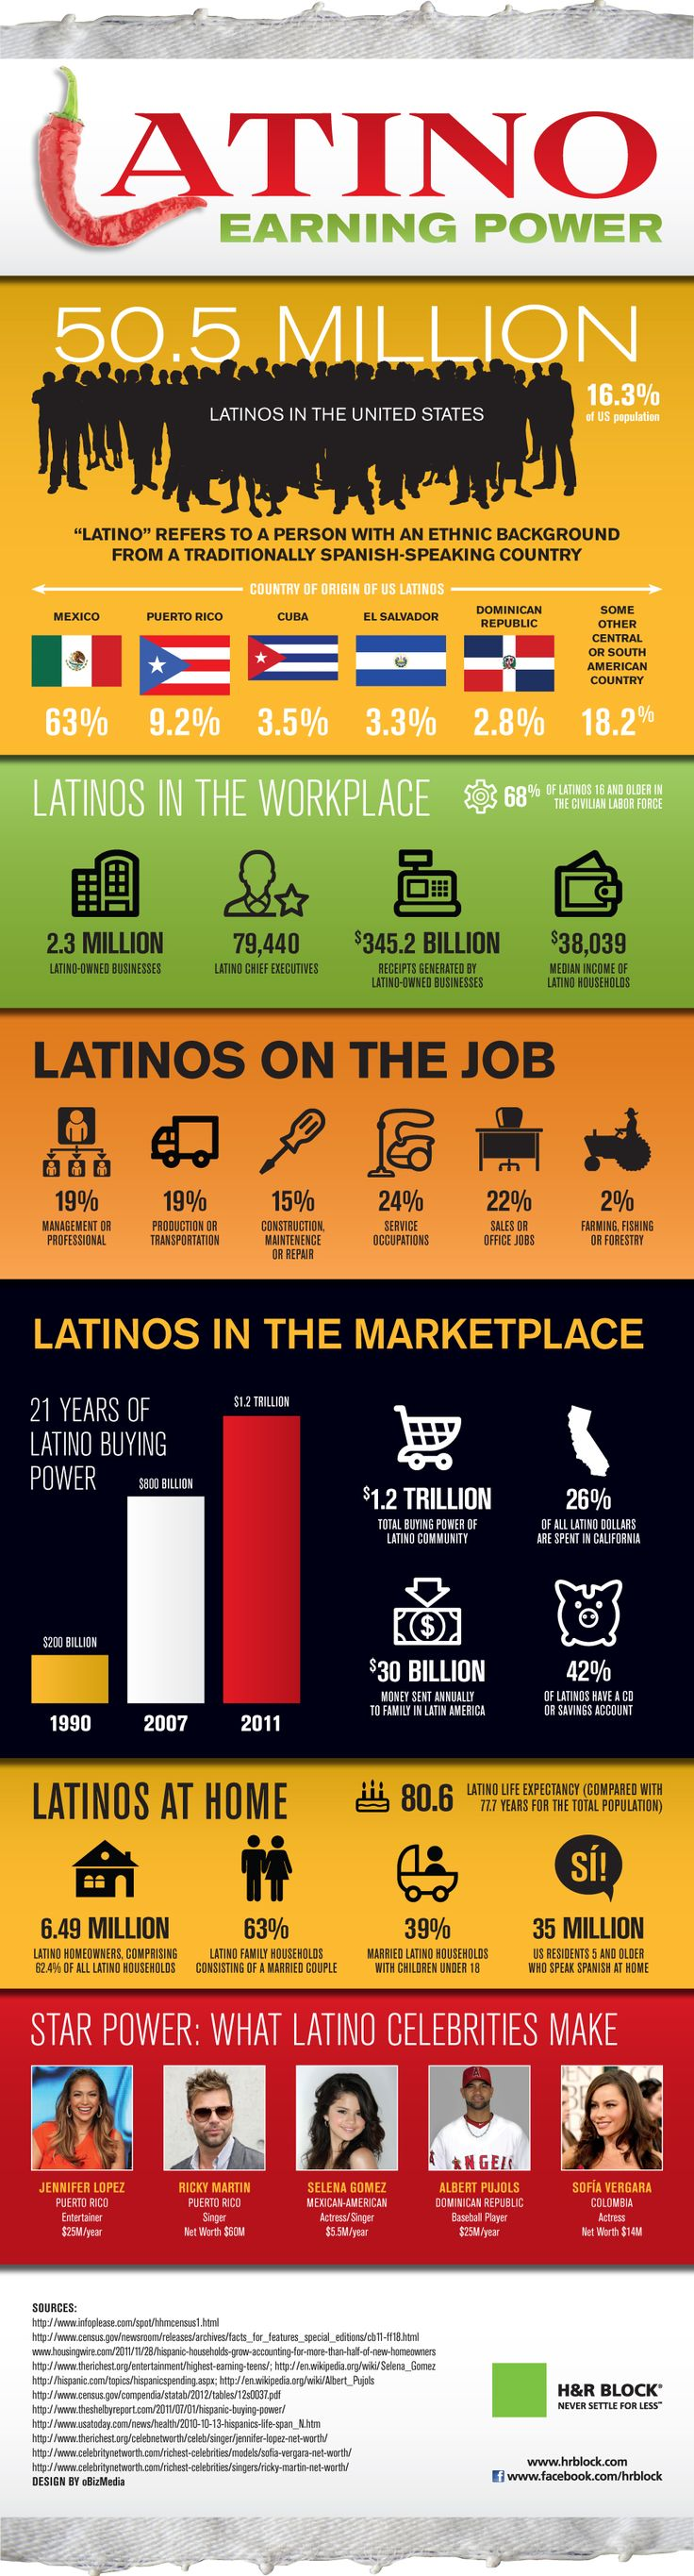 Now encompassing almost 17% of the U.S. population, Latinos in U.S.A. are becoming a force in more ways than one.